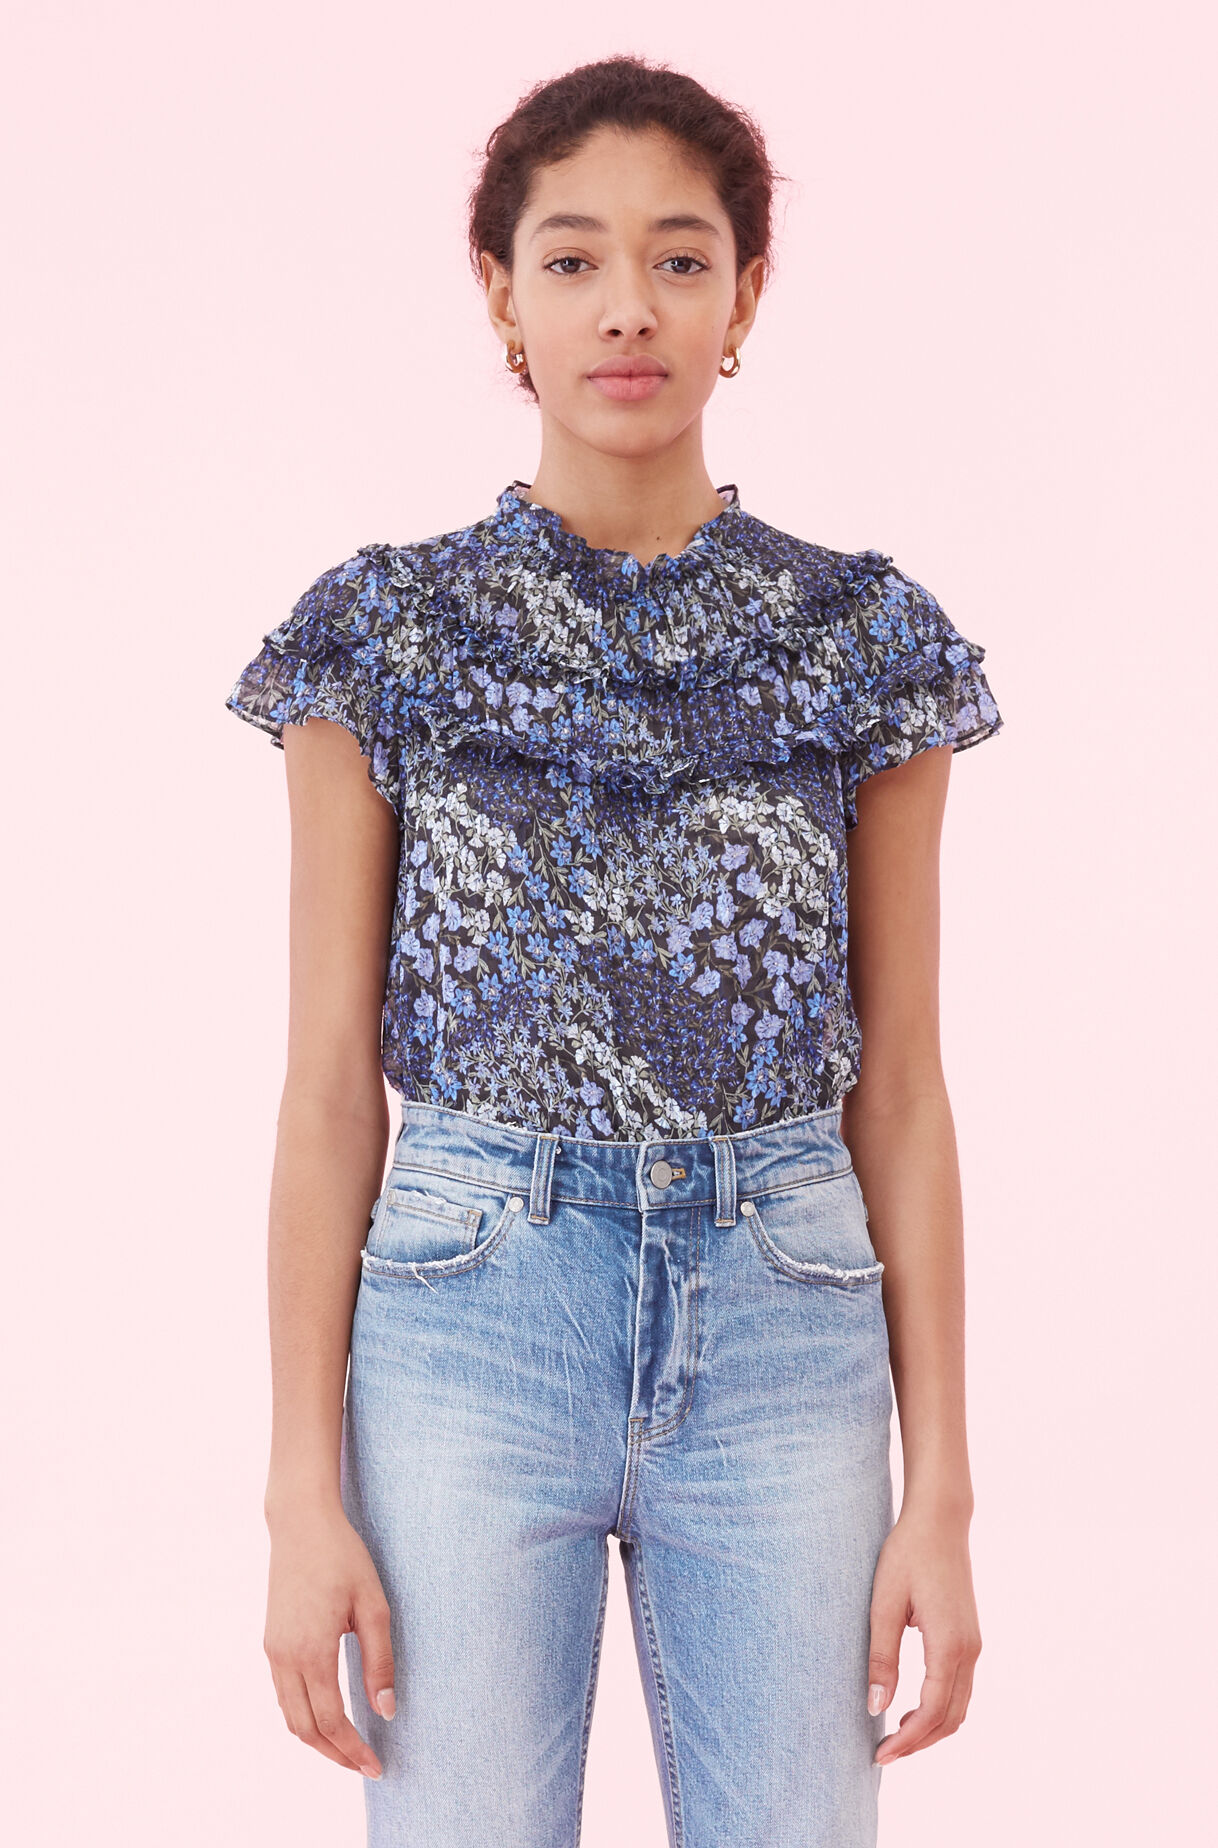 Ava Floral Ruffle Top, , large